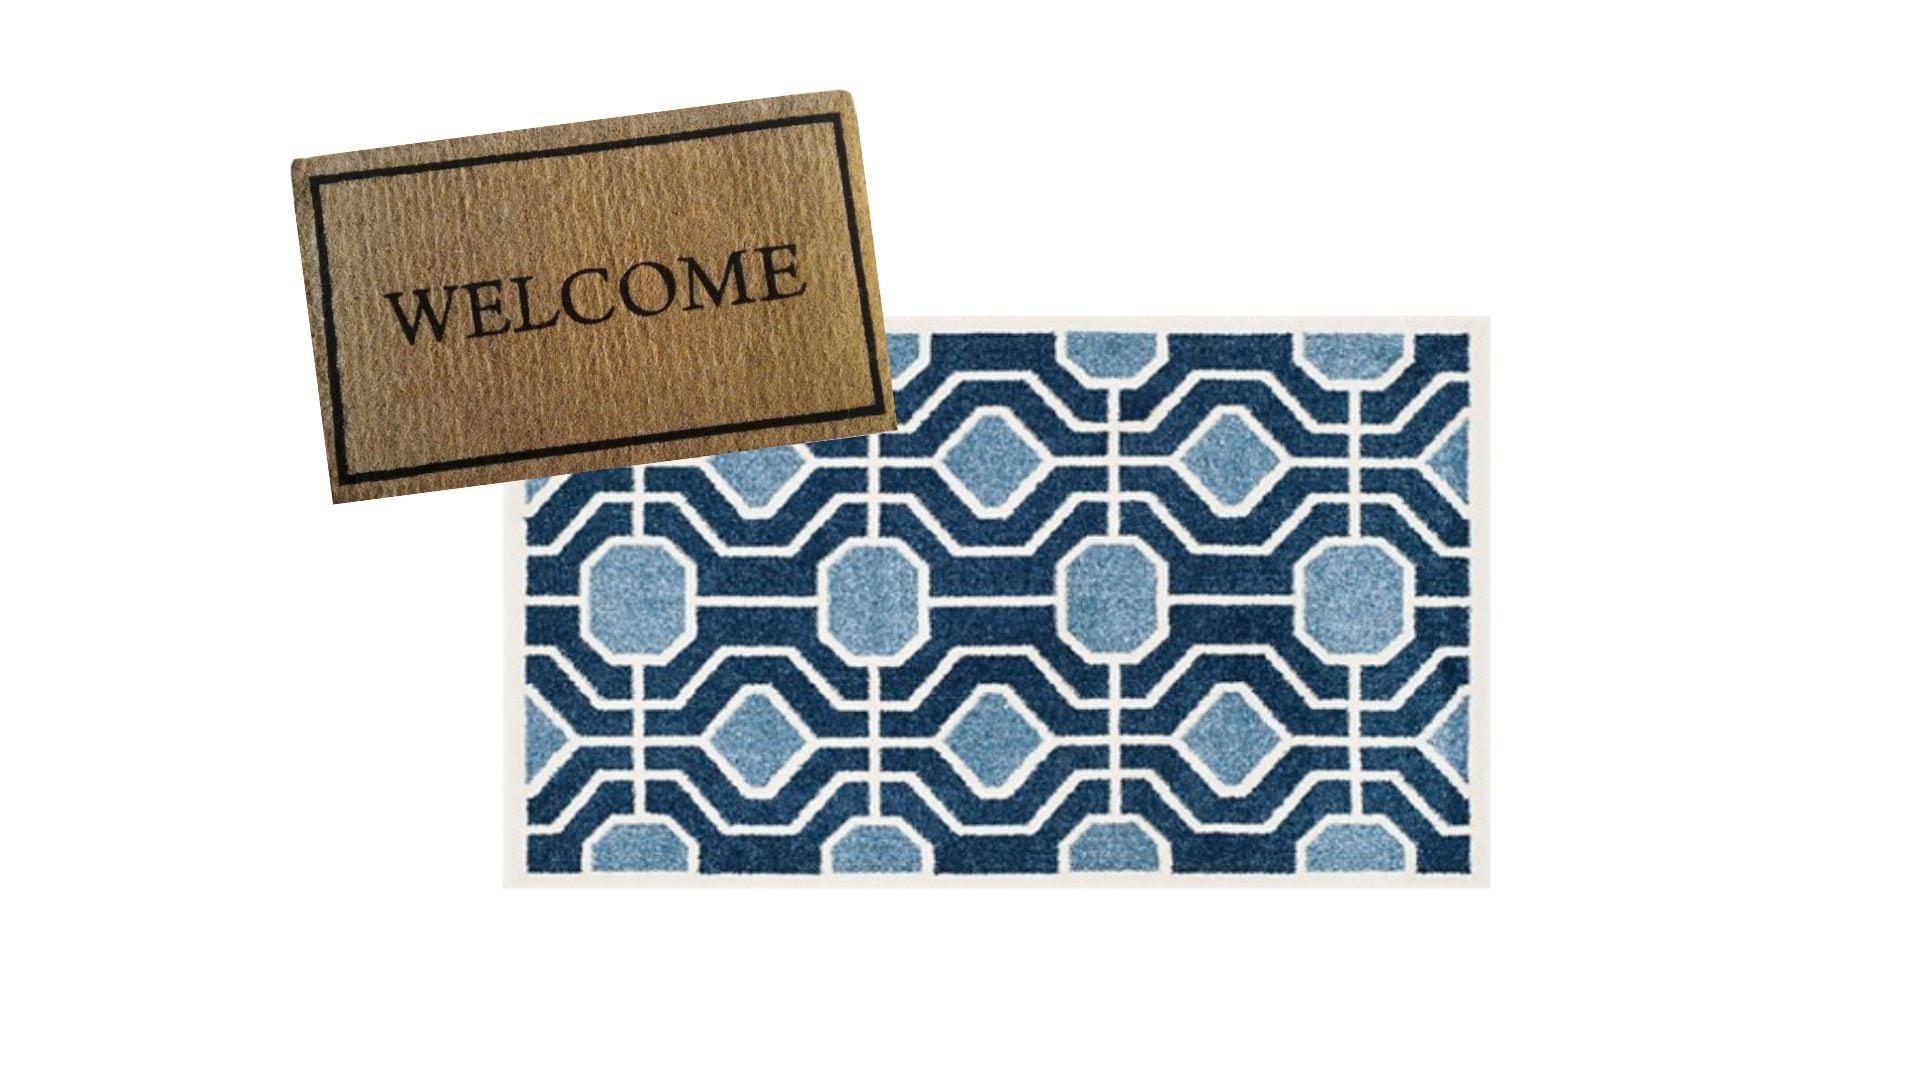 layered rugs at front door — welcome doormat with blue geometric rug » Never Skip Brunch by Cara Newhart